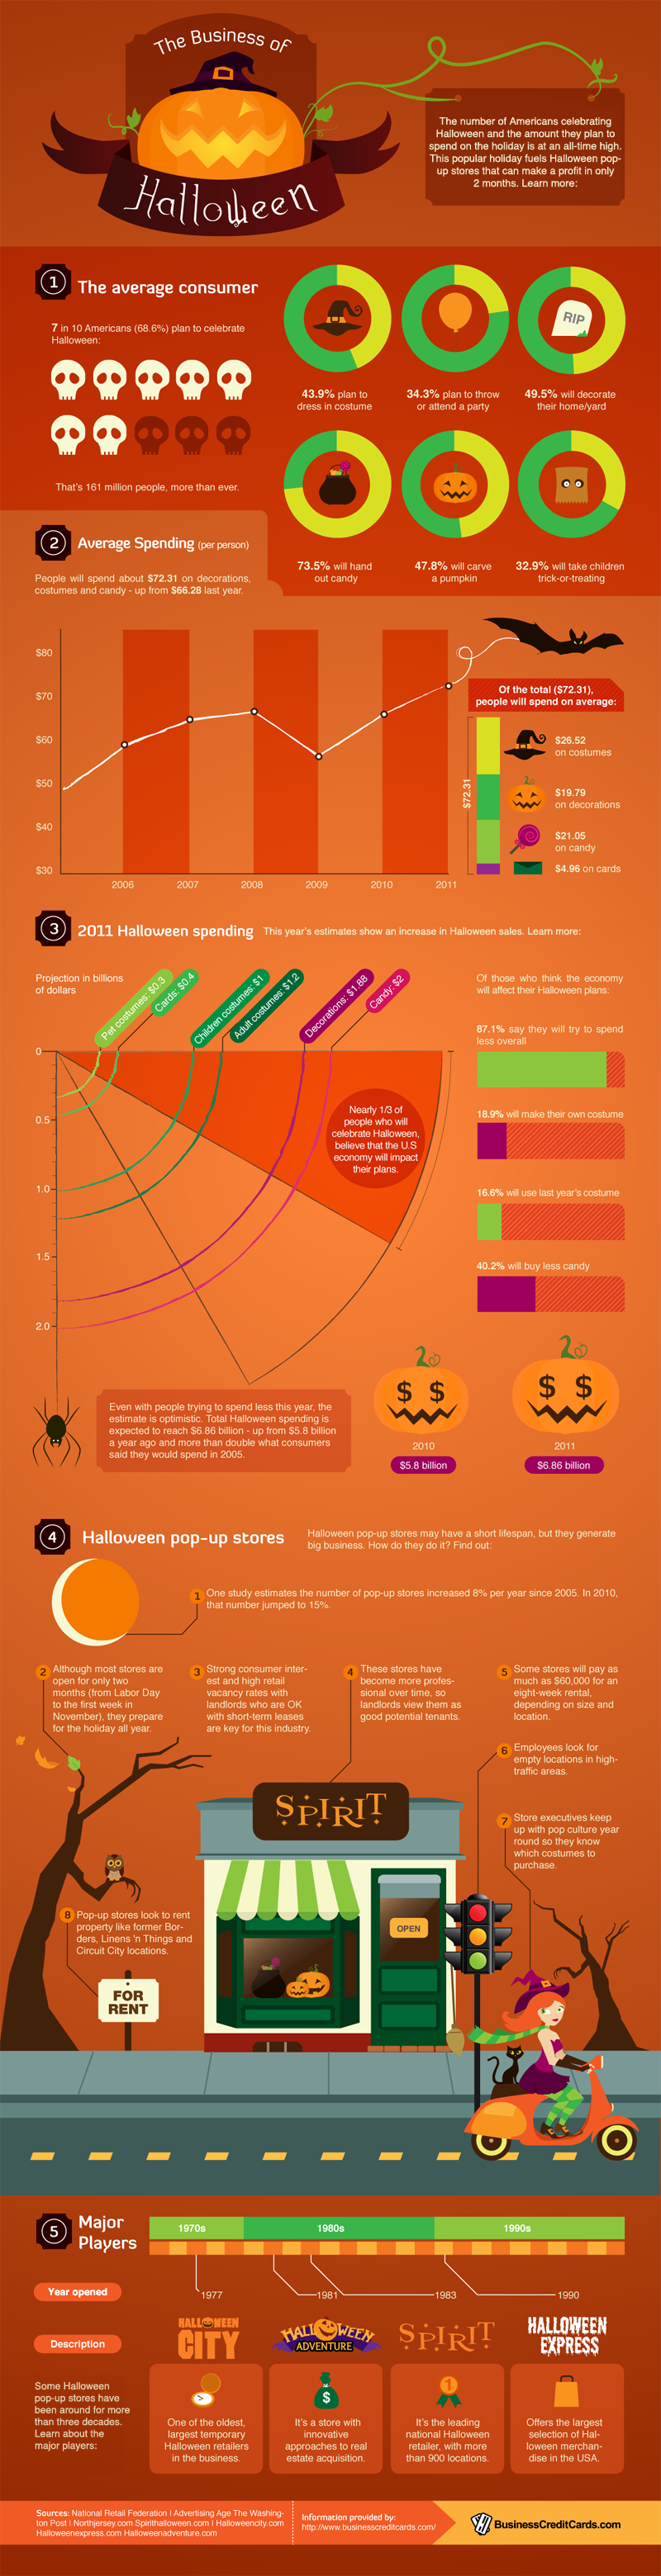 The Business of Halloween business infographic